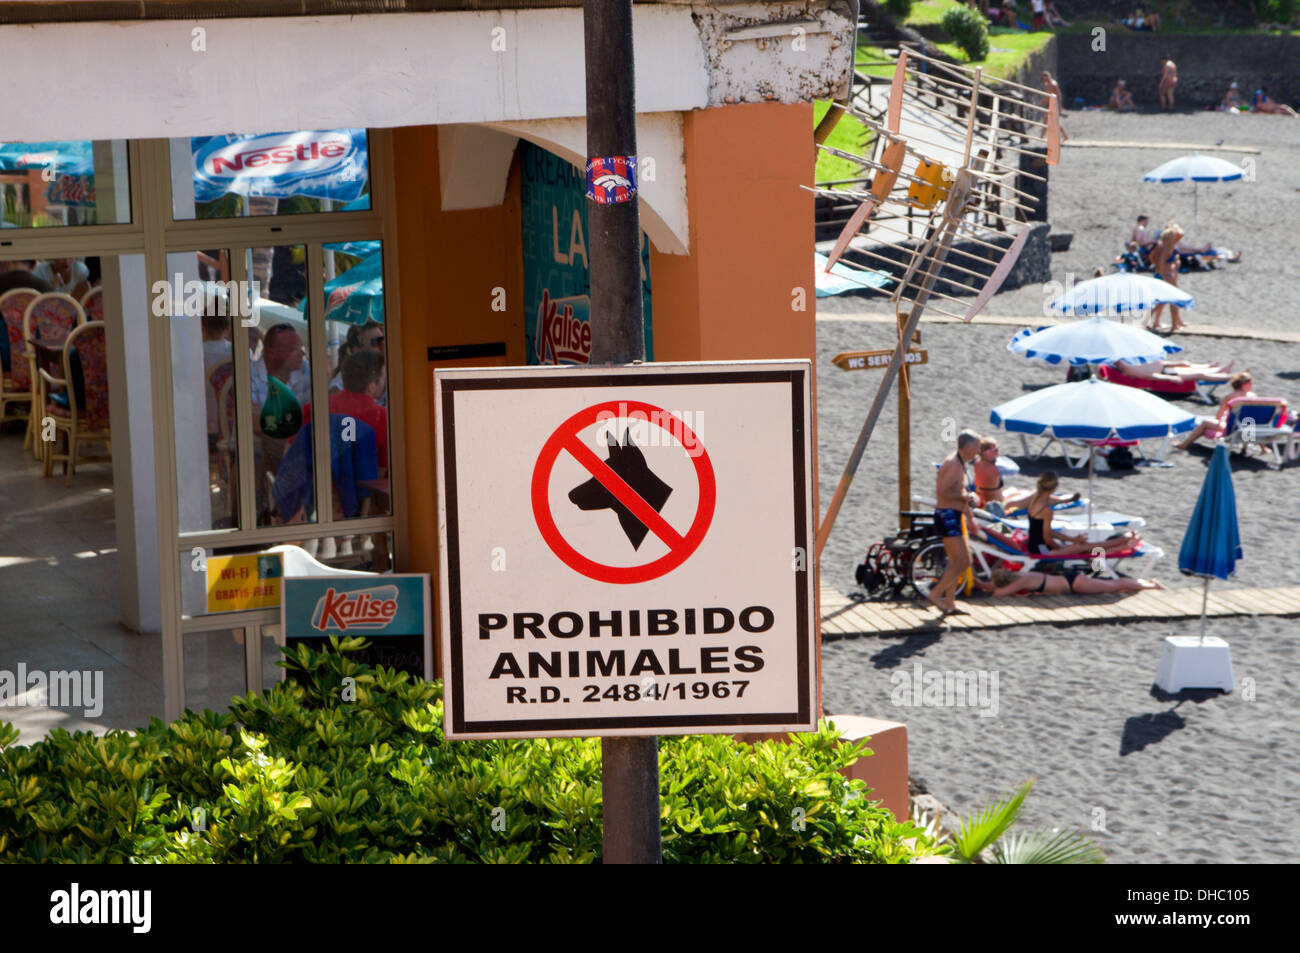 Sign in Spanish Prohibiting animals from Playa Arena Beach, Tenerife, Canary Islands, Spain. - Stock Image